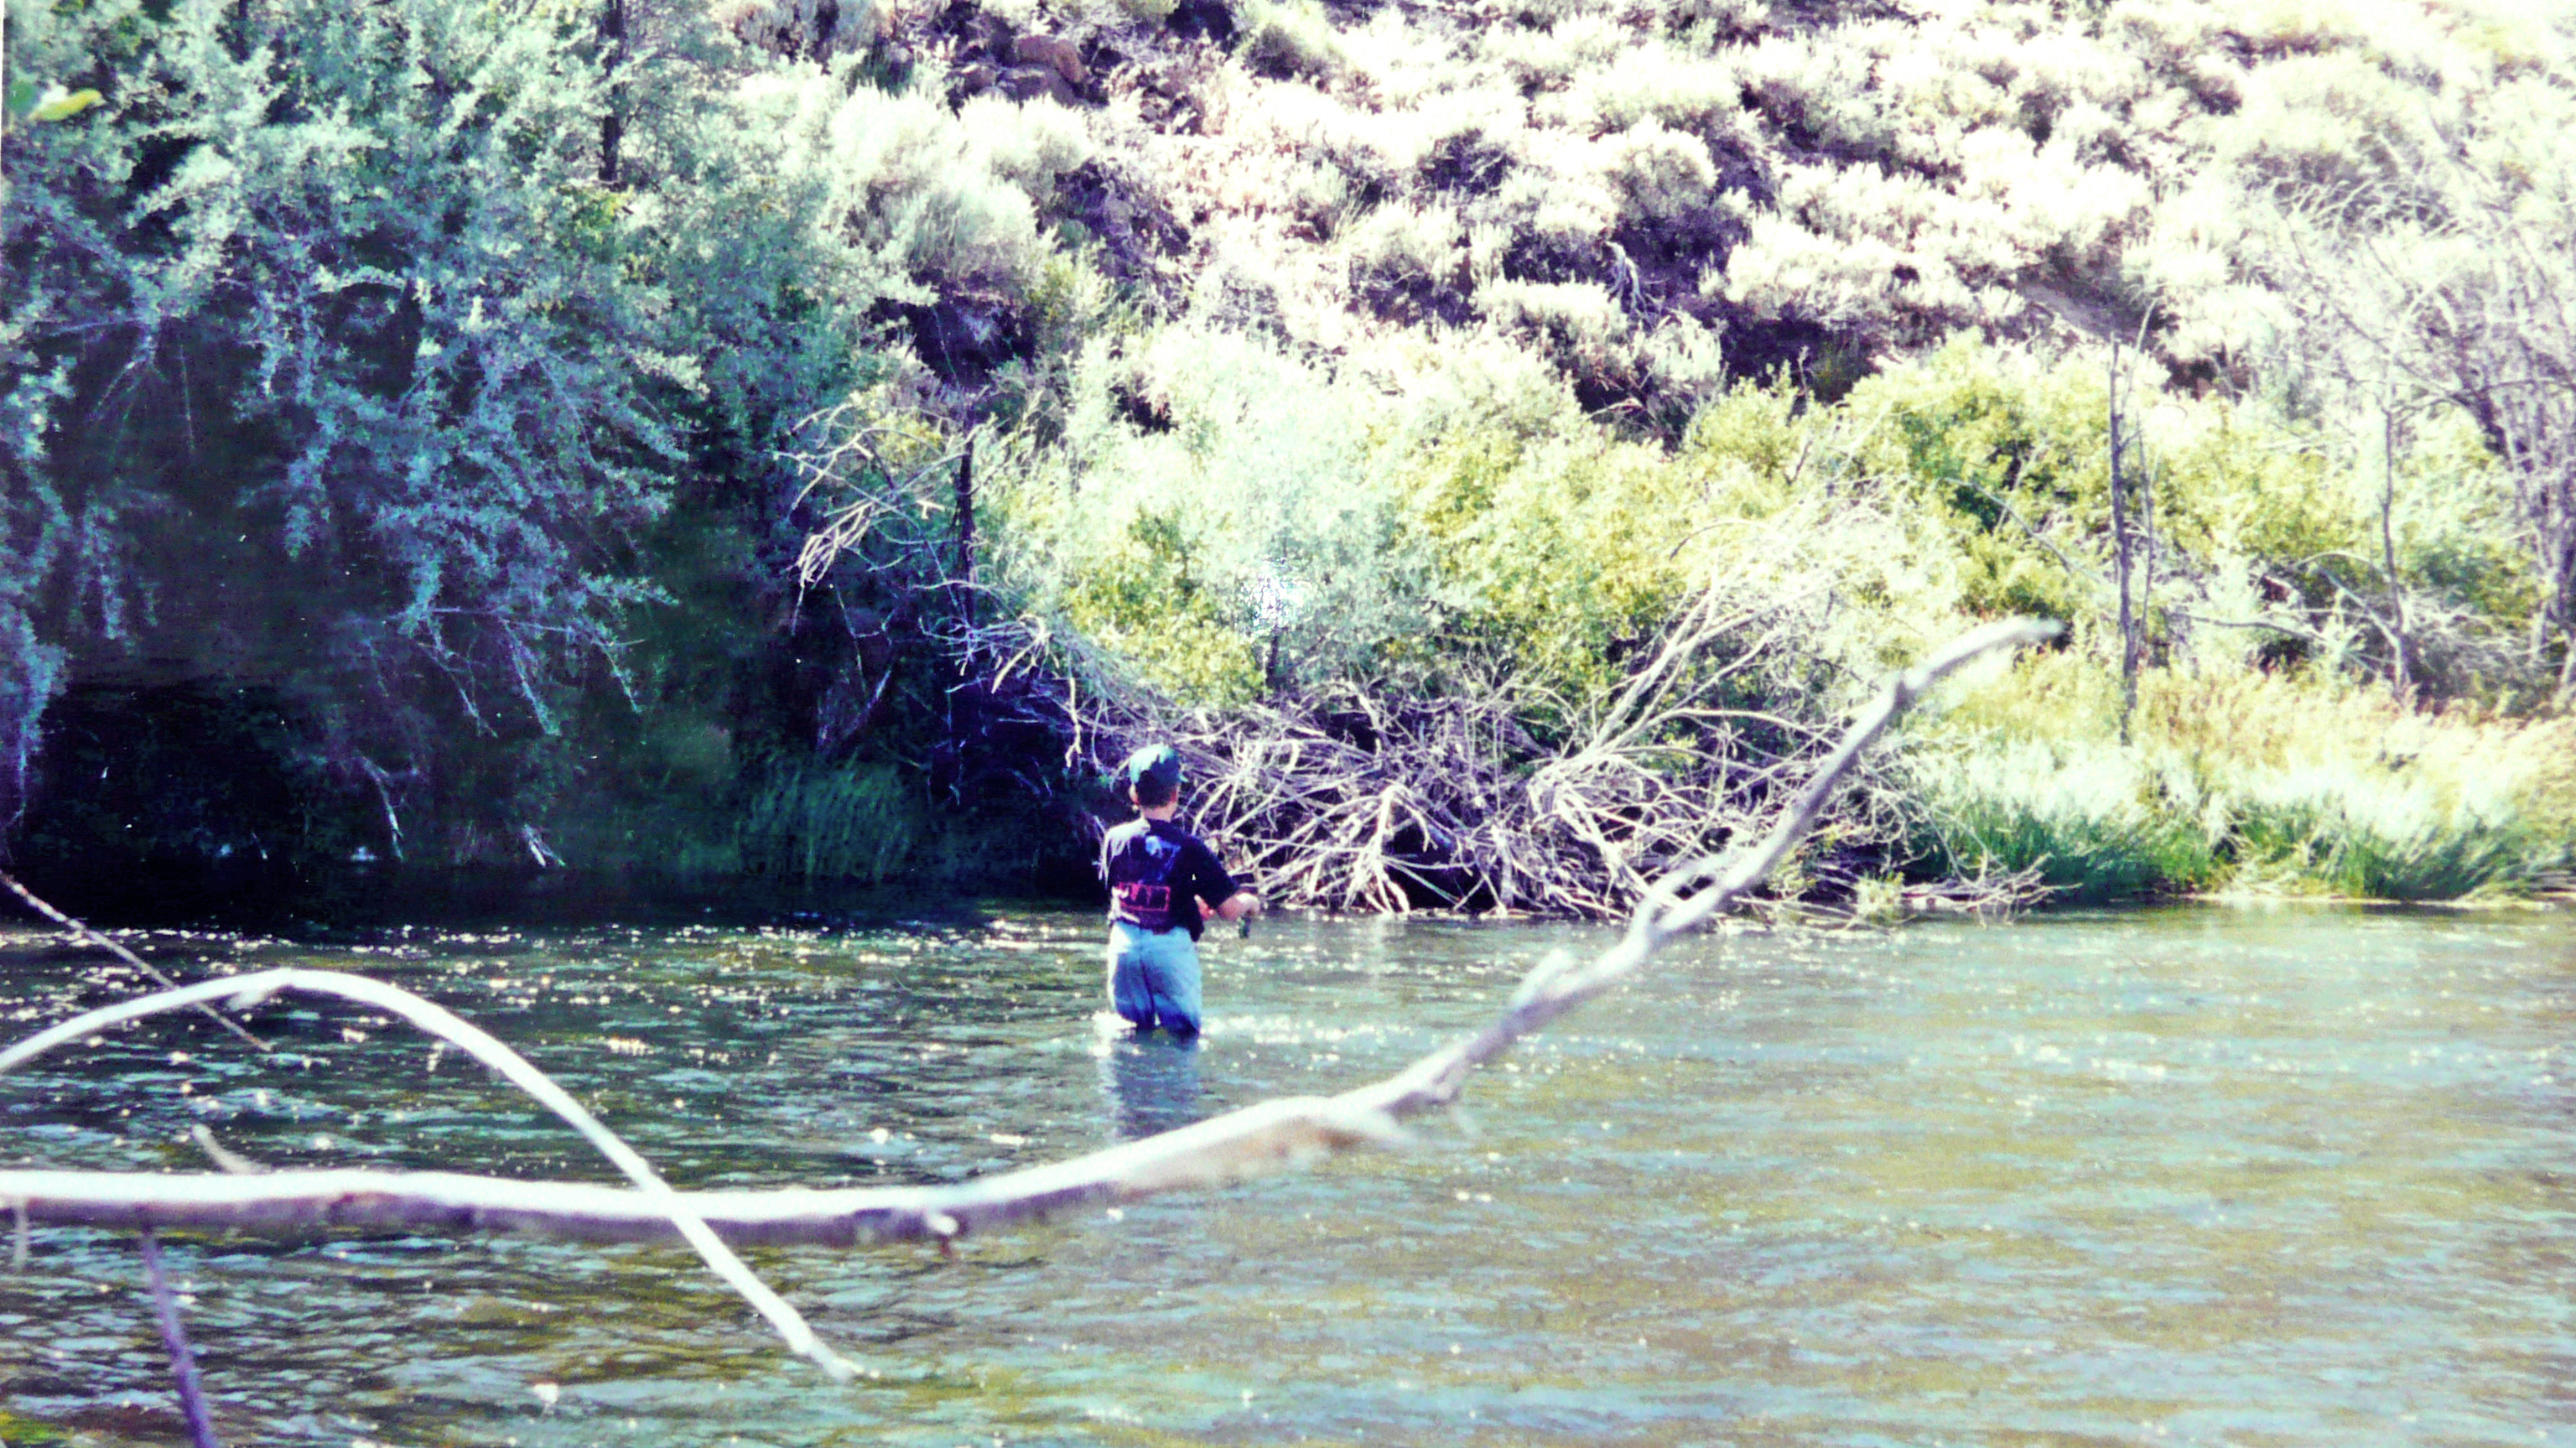 Tailwater tiny s planettrout for Walker river fishing